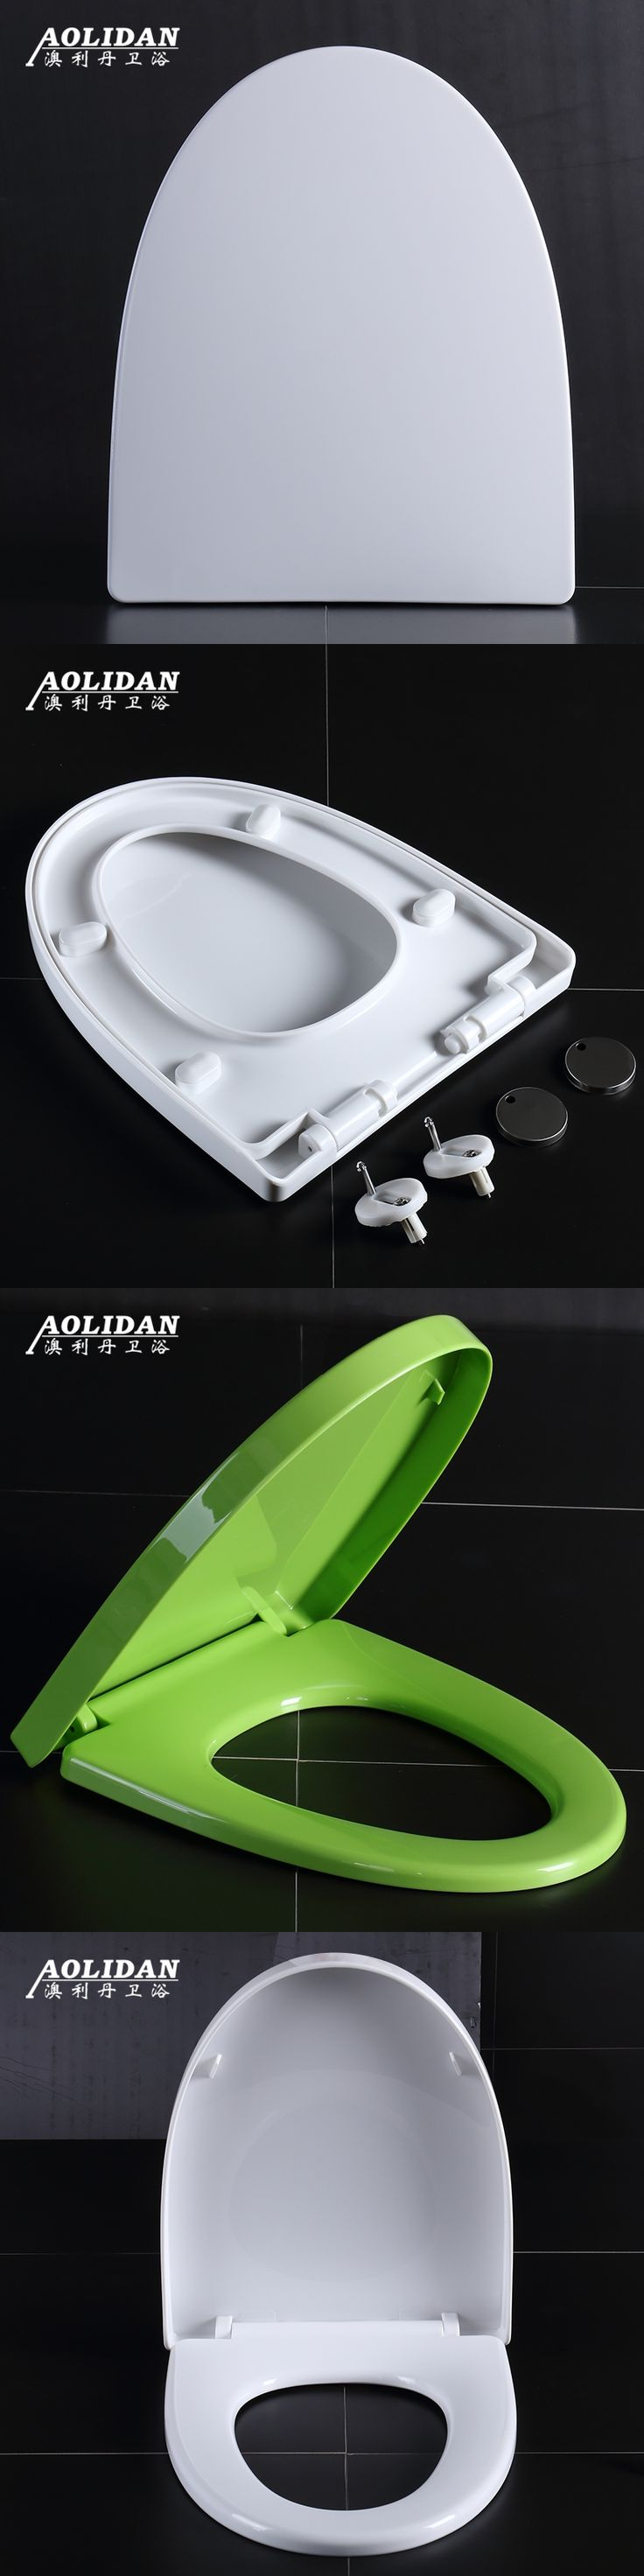 2017 Electronic Bidet Bidet Heated Toilet Seat Cover Slow Down Thickened General Color Lid Type V O U Old Three Quick Release